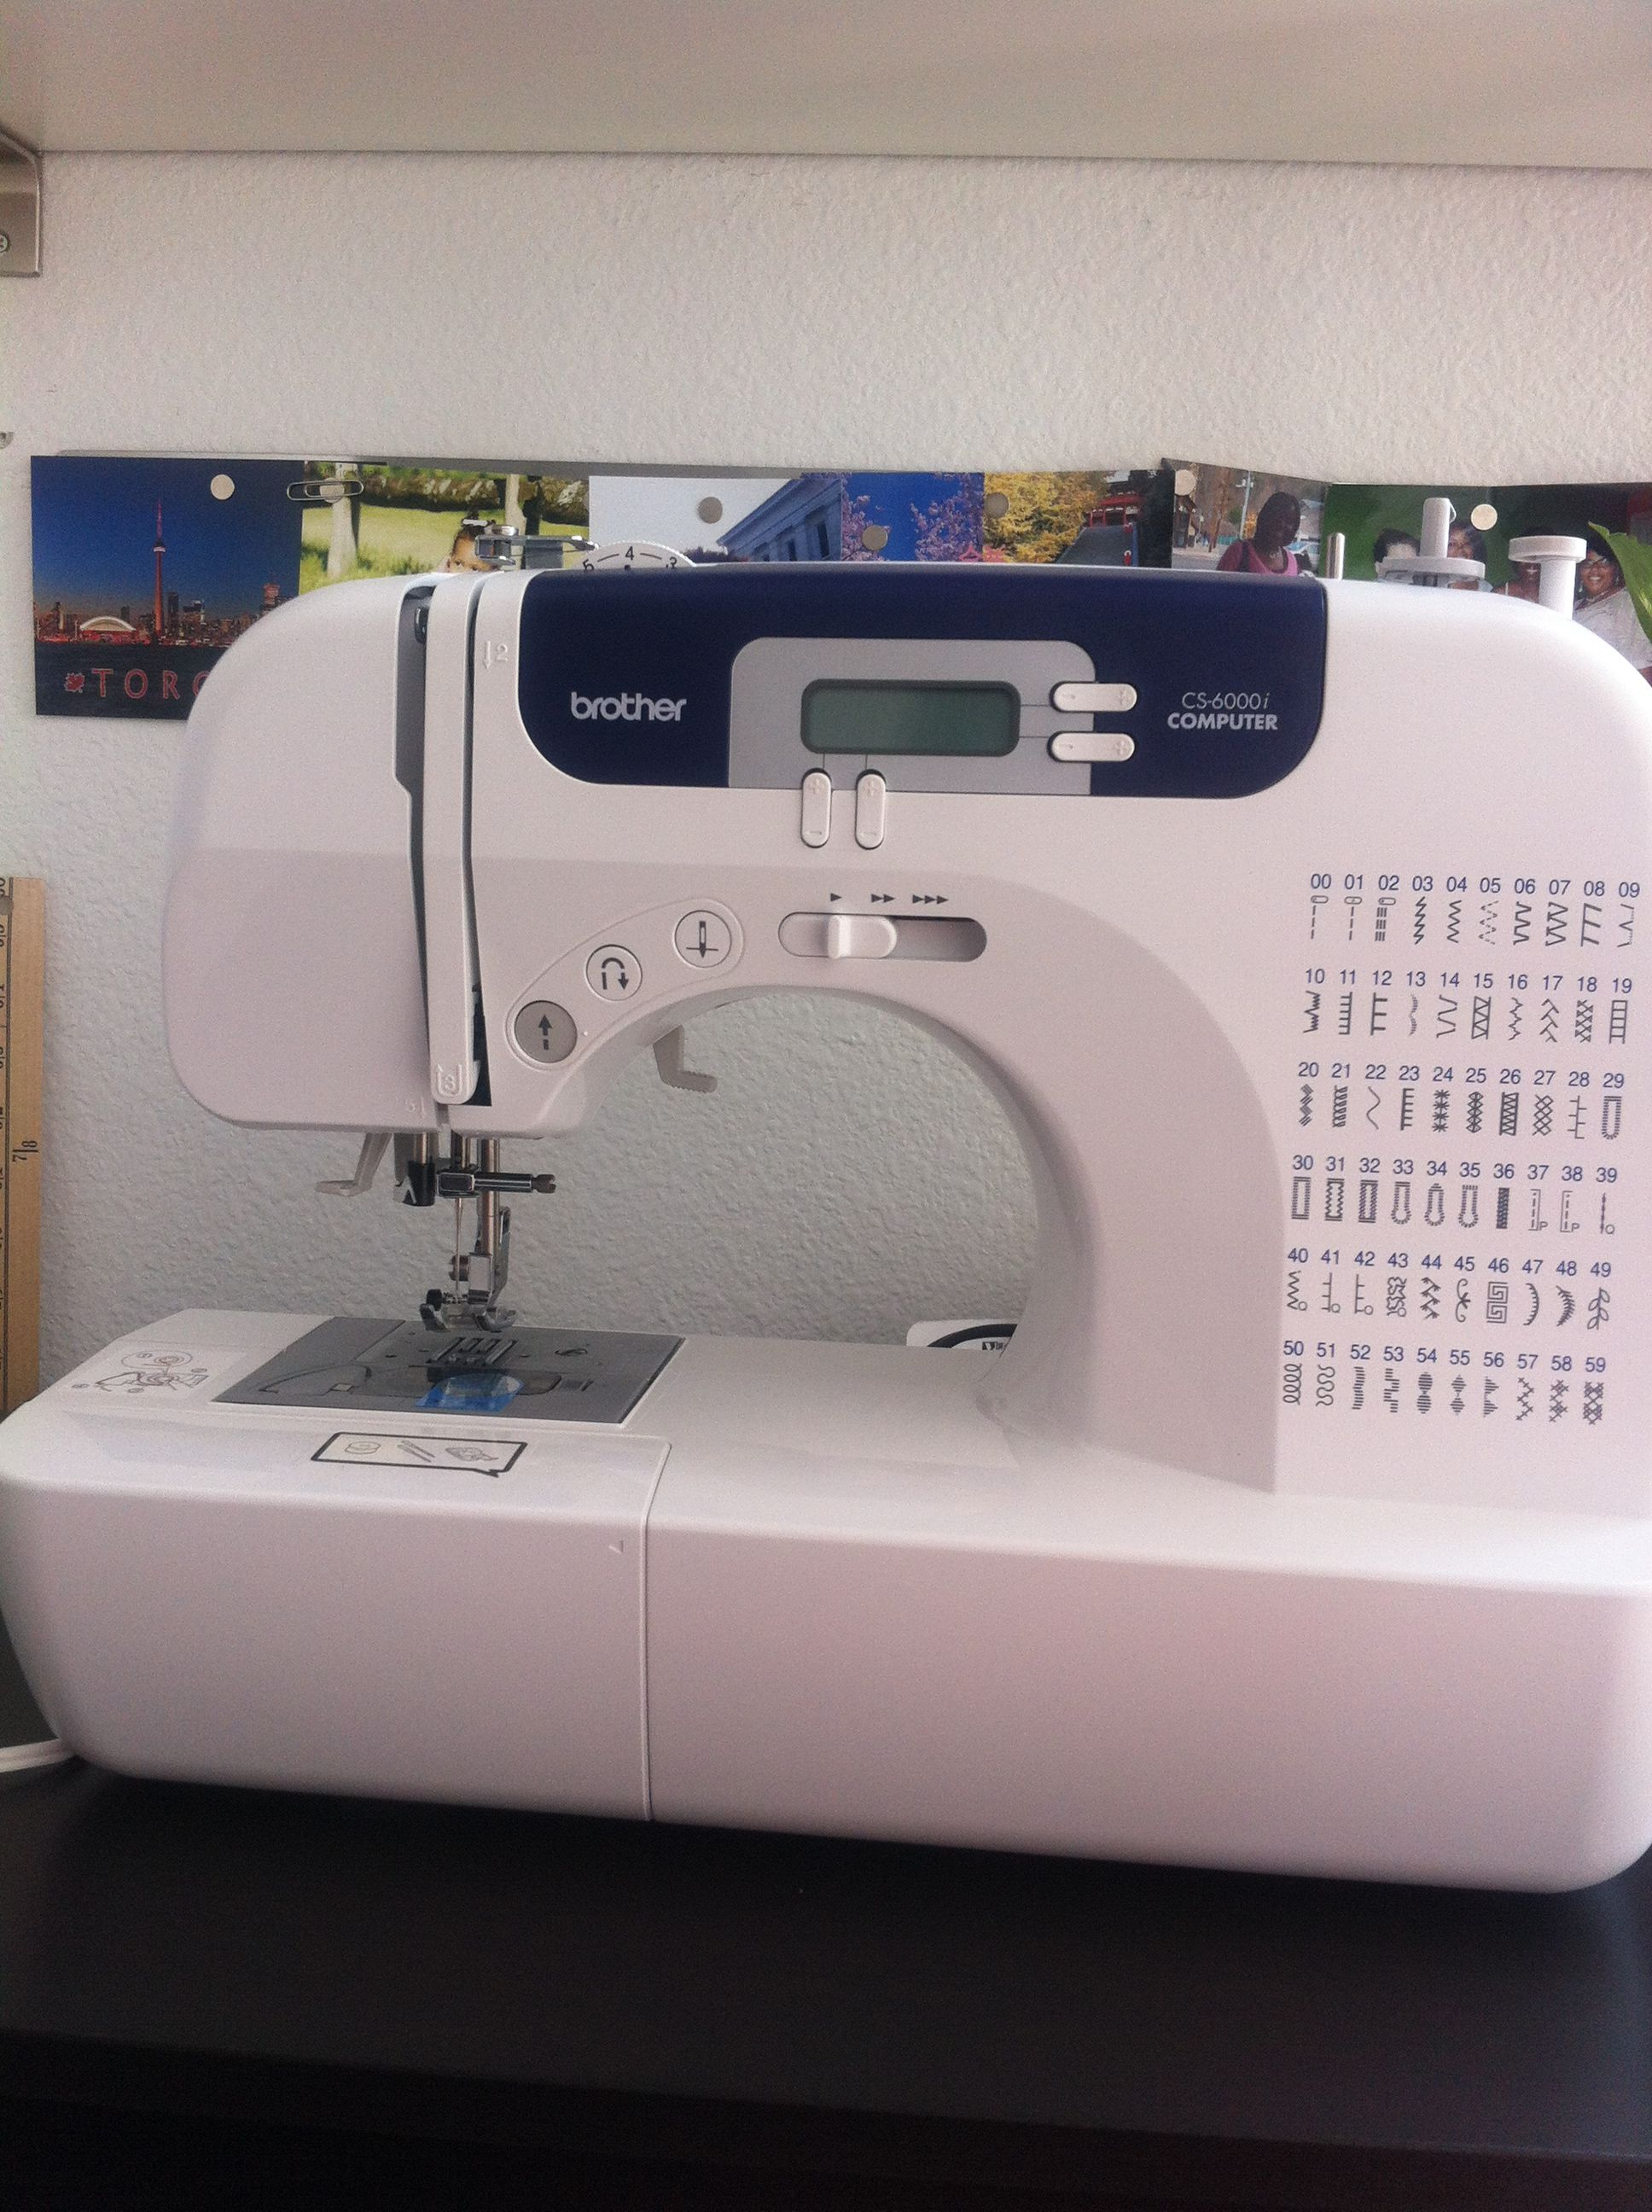 Setting up my new sewing machine. Brother cs6000i | Sewing ...